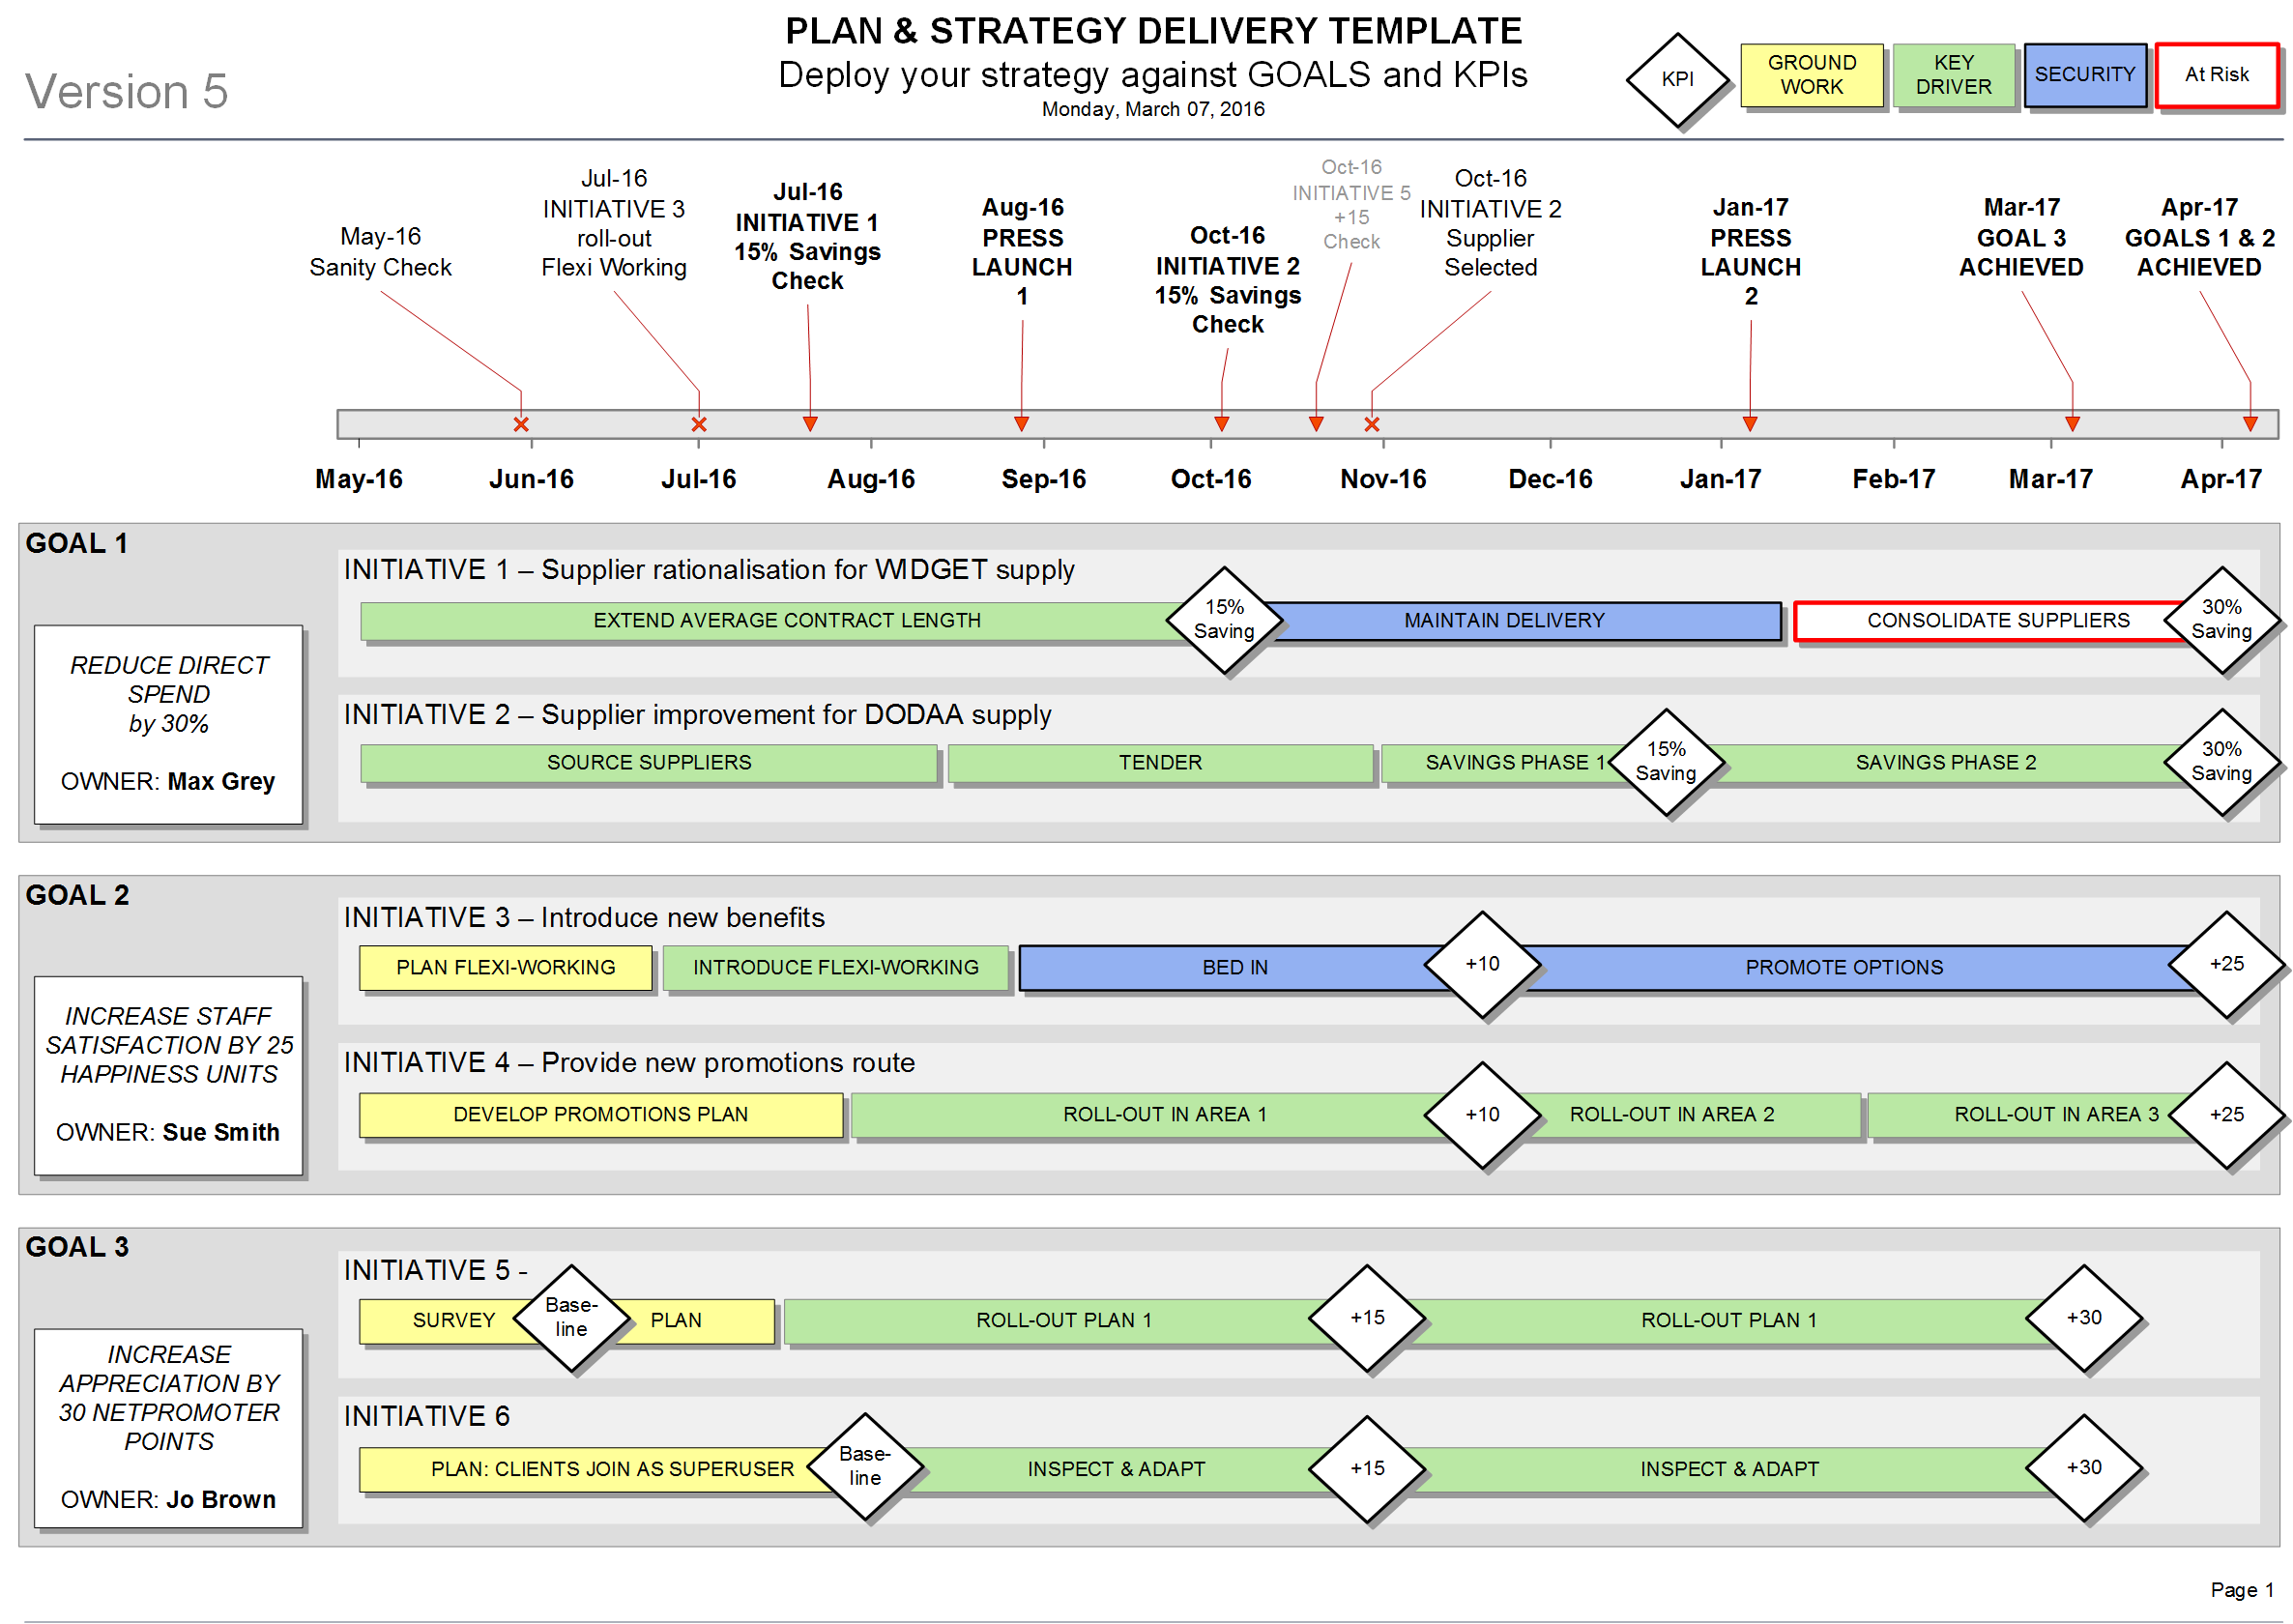 visio timeline template download.html